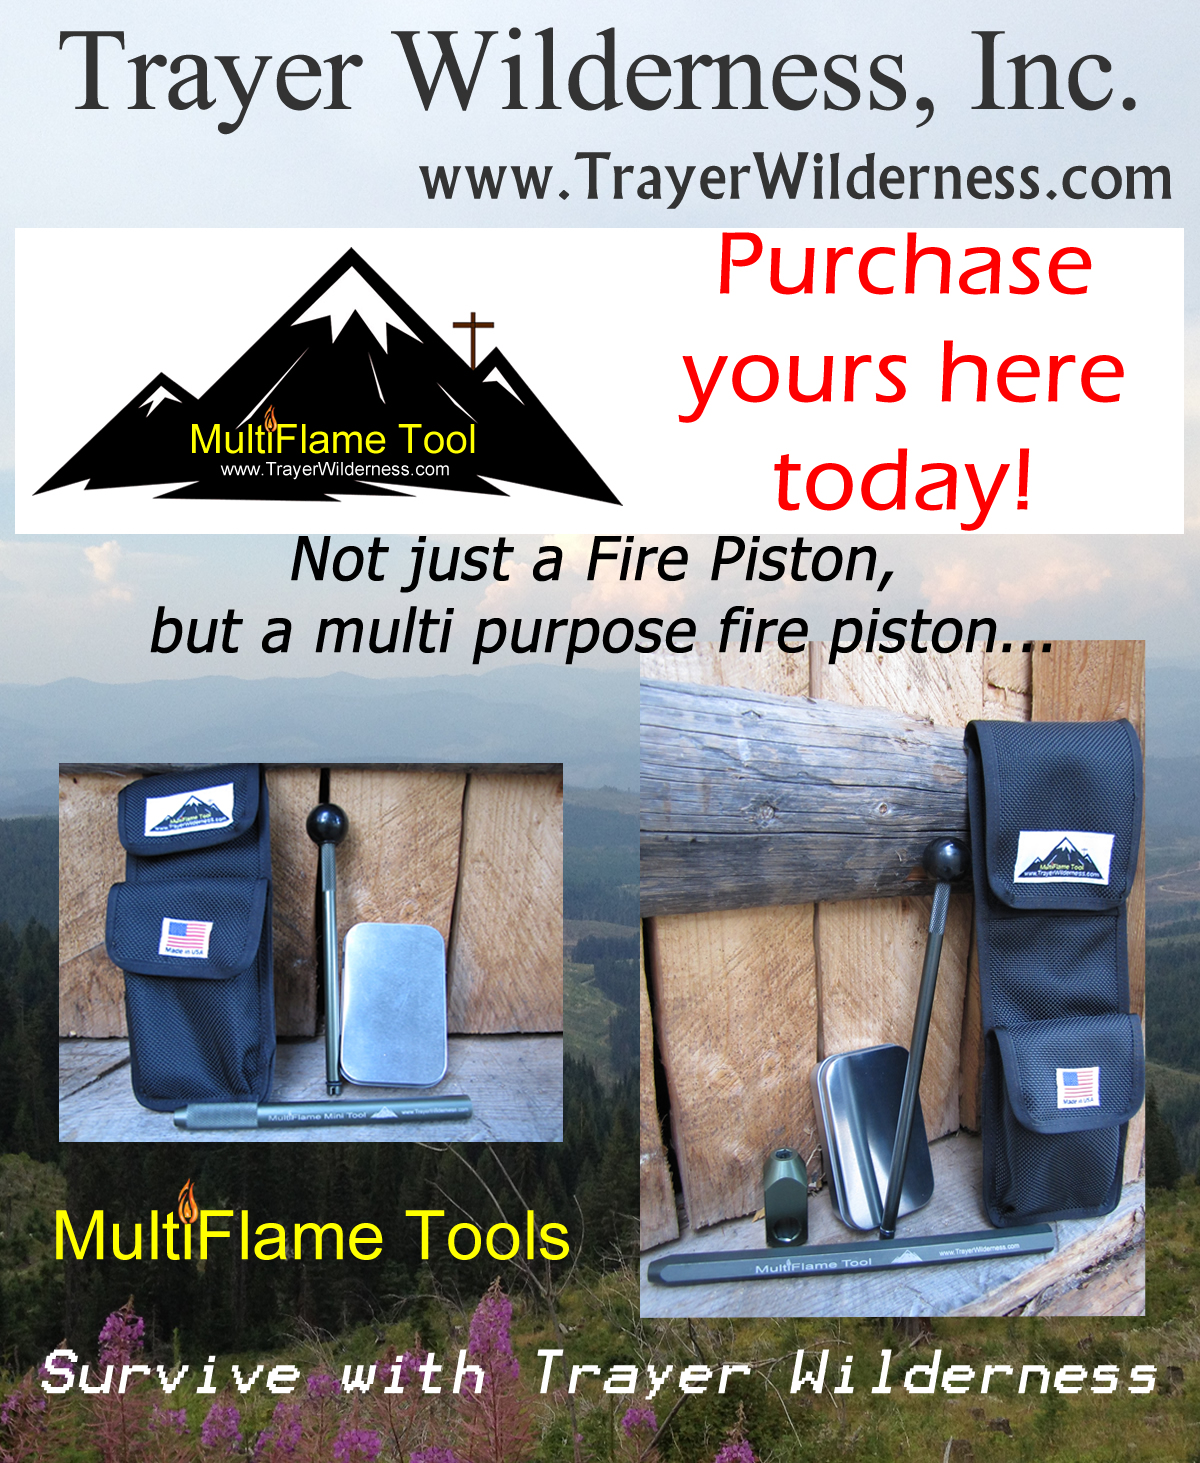 For more details on my MultiFlame Tools…